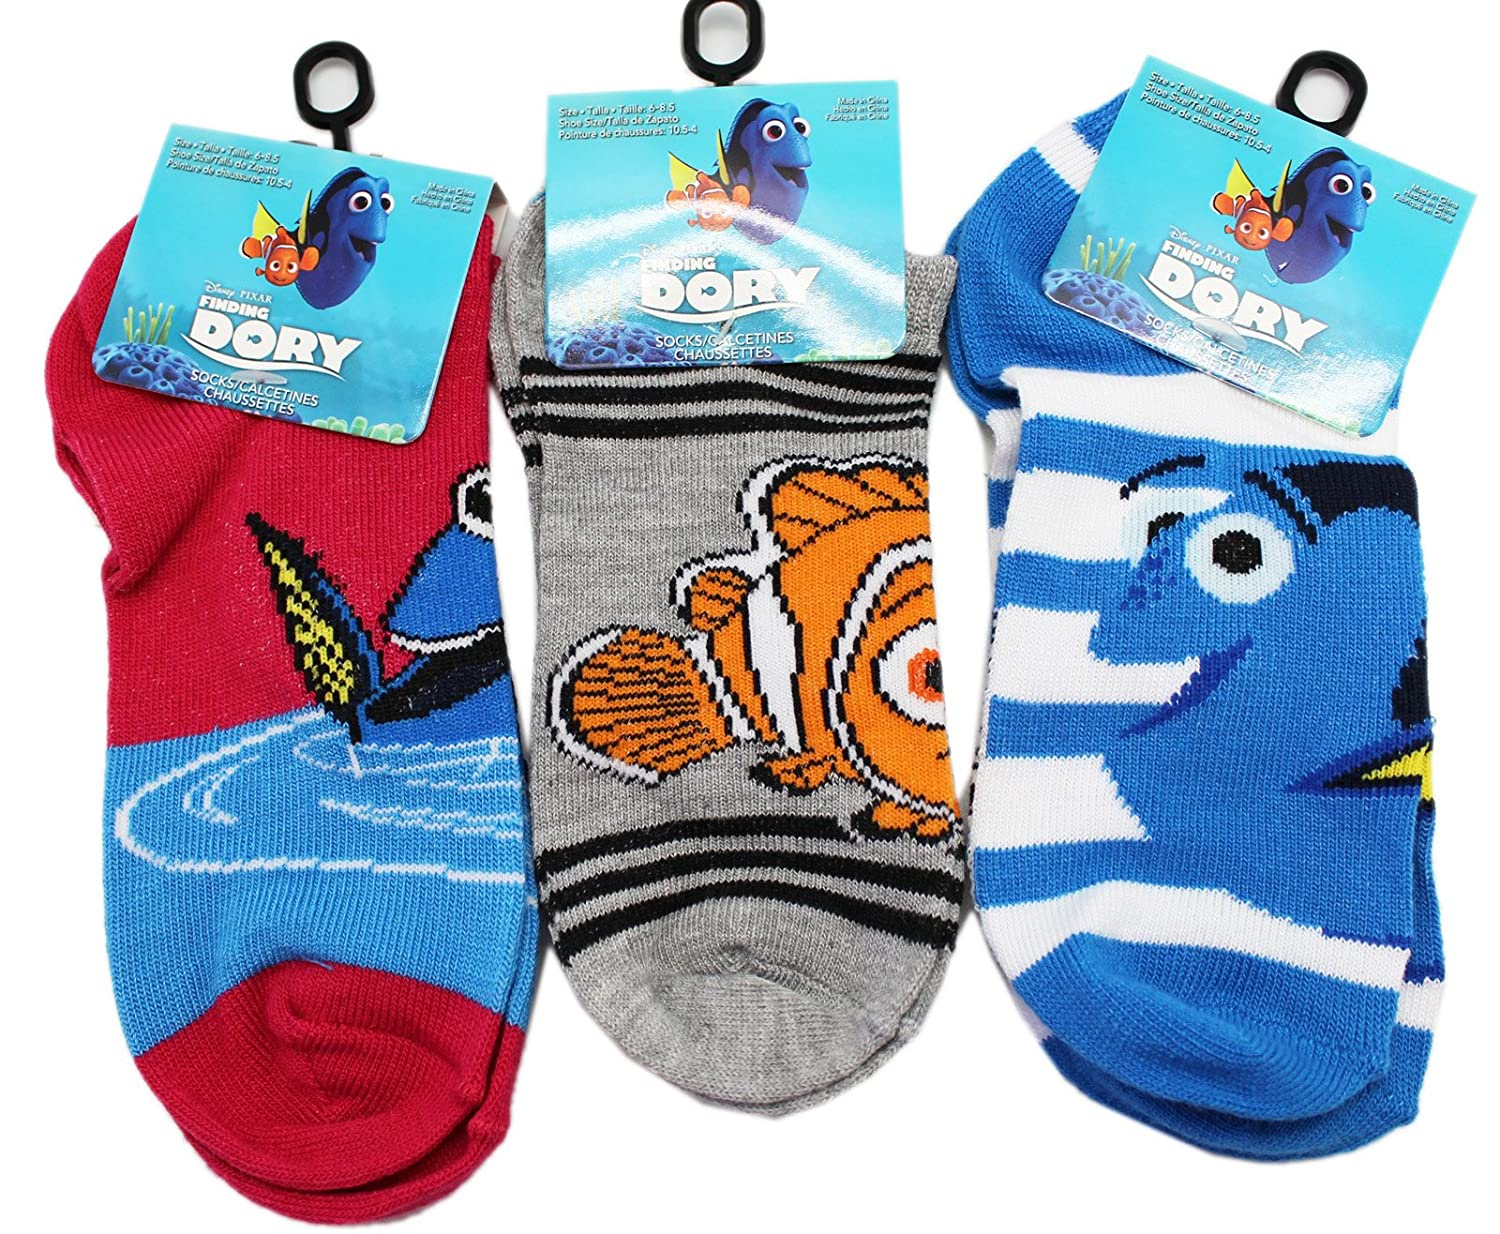 Amazon.com: Disney Pixars Finding Dory Little Kids Sock Collection (Sock Size 4-6, 3 Pairs): Clothing